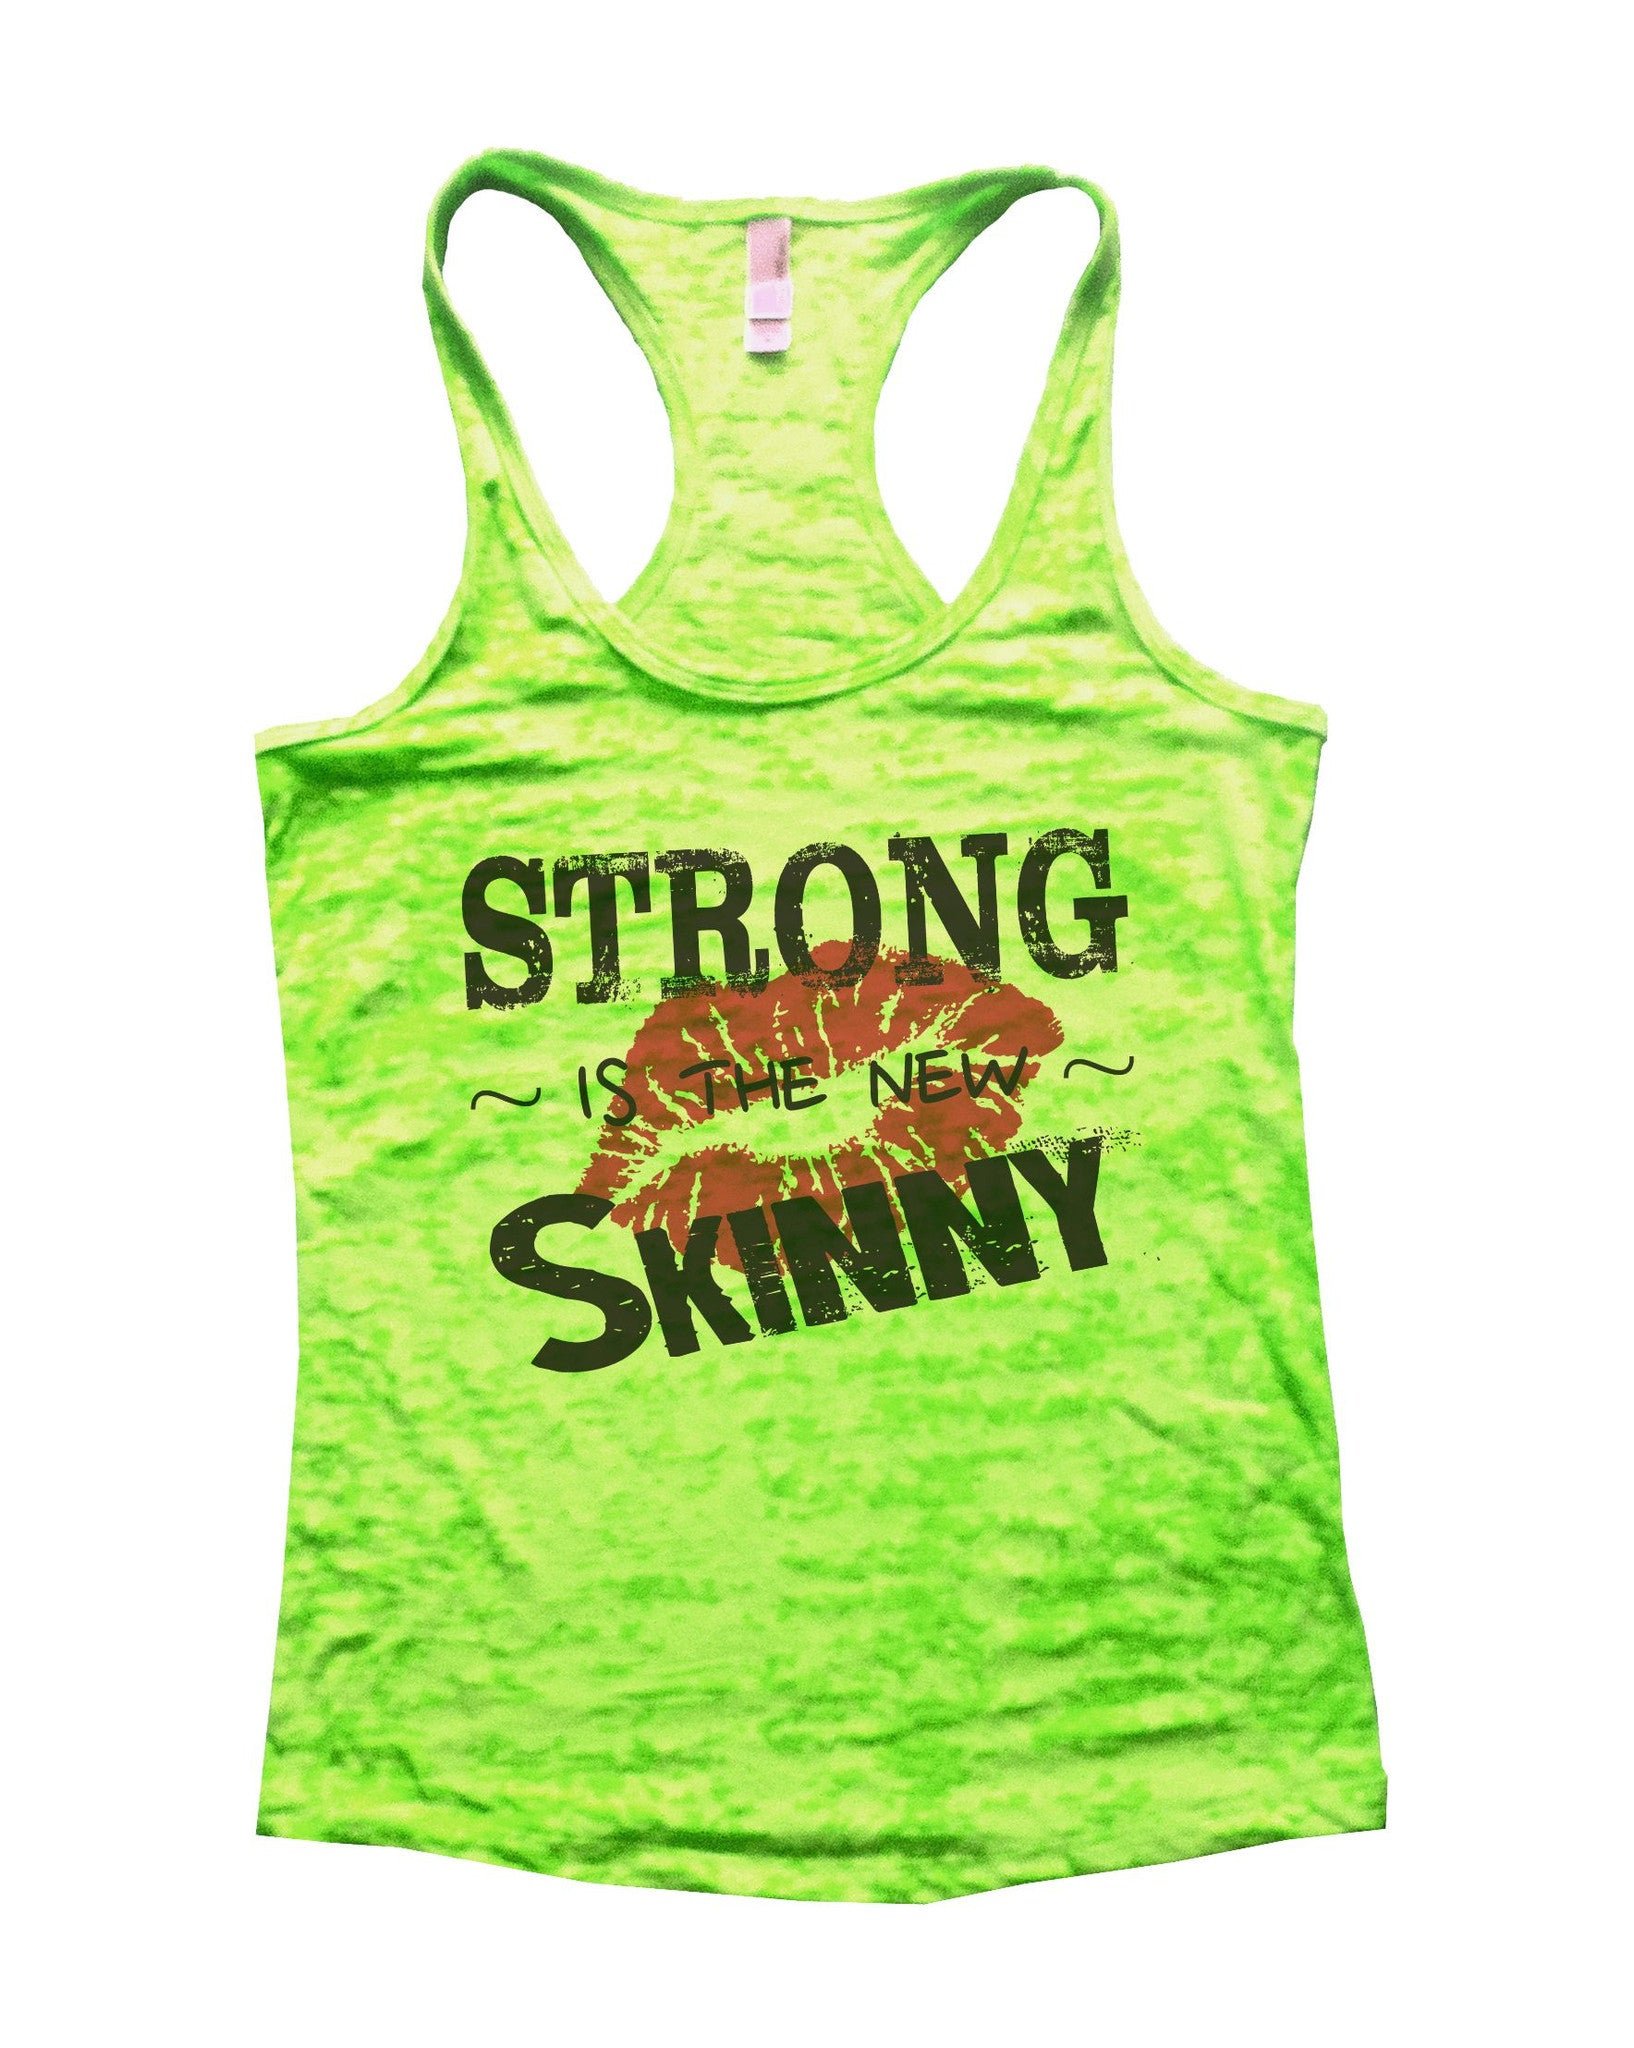 Strong Is The New Skinny Burnout Tank Top By BurnoutTankTops.com - 755 - Funny Shirts Tank Tops Burnouts and Triblends  - 2